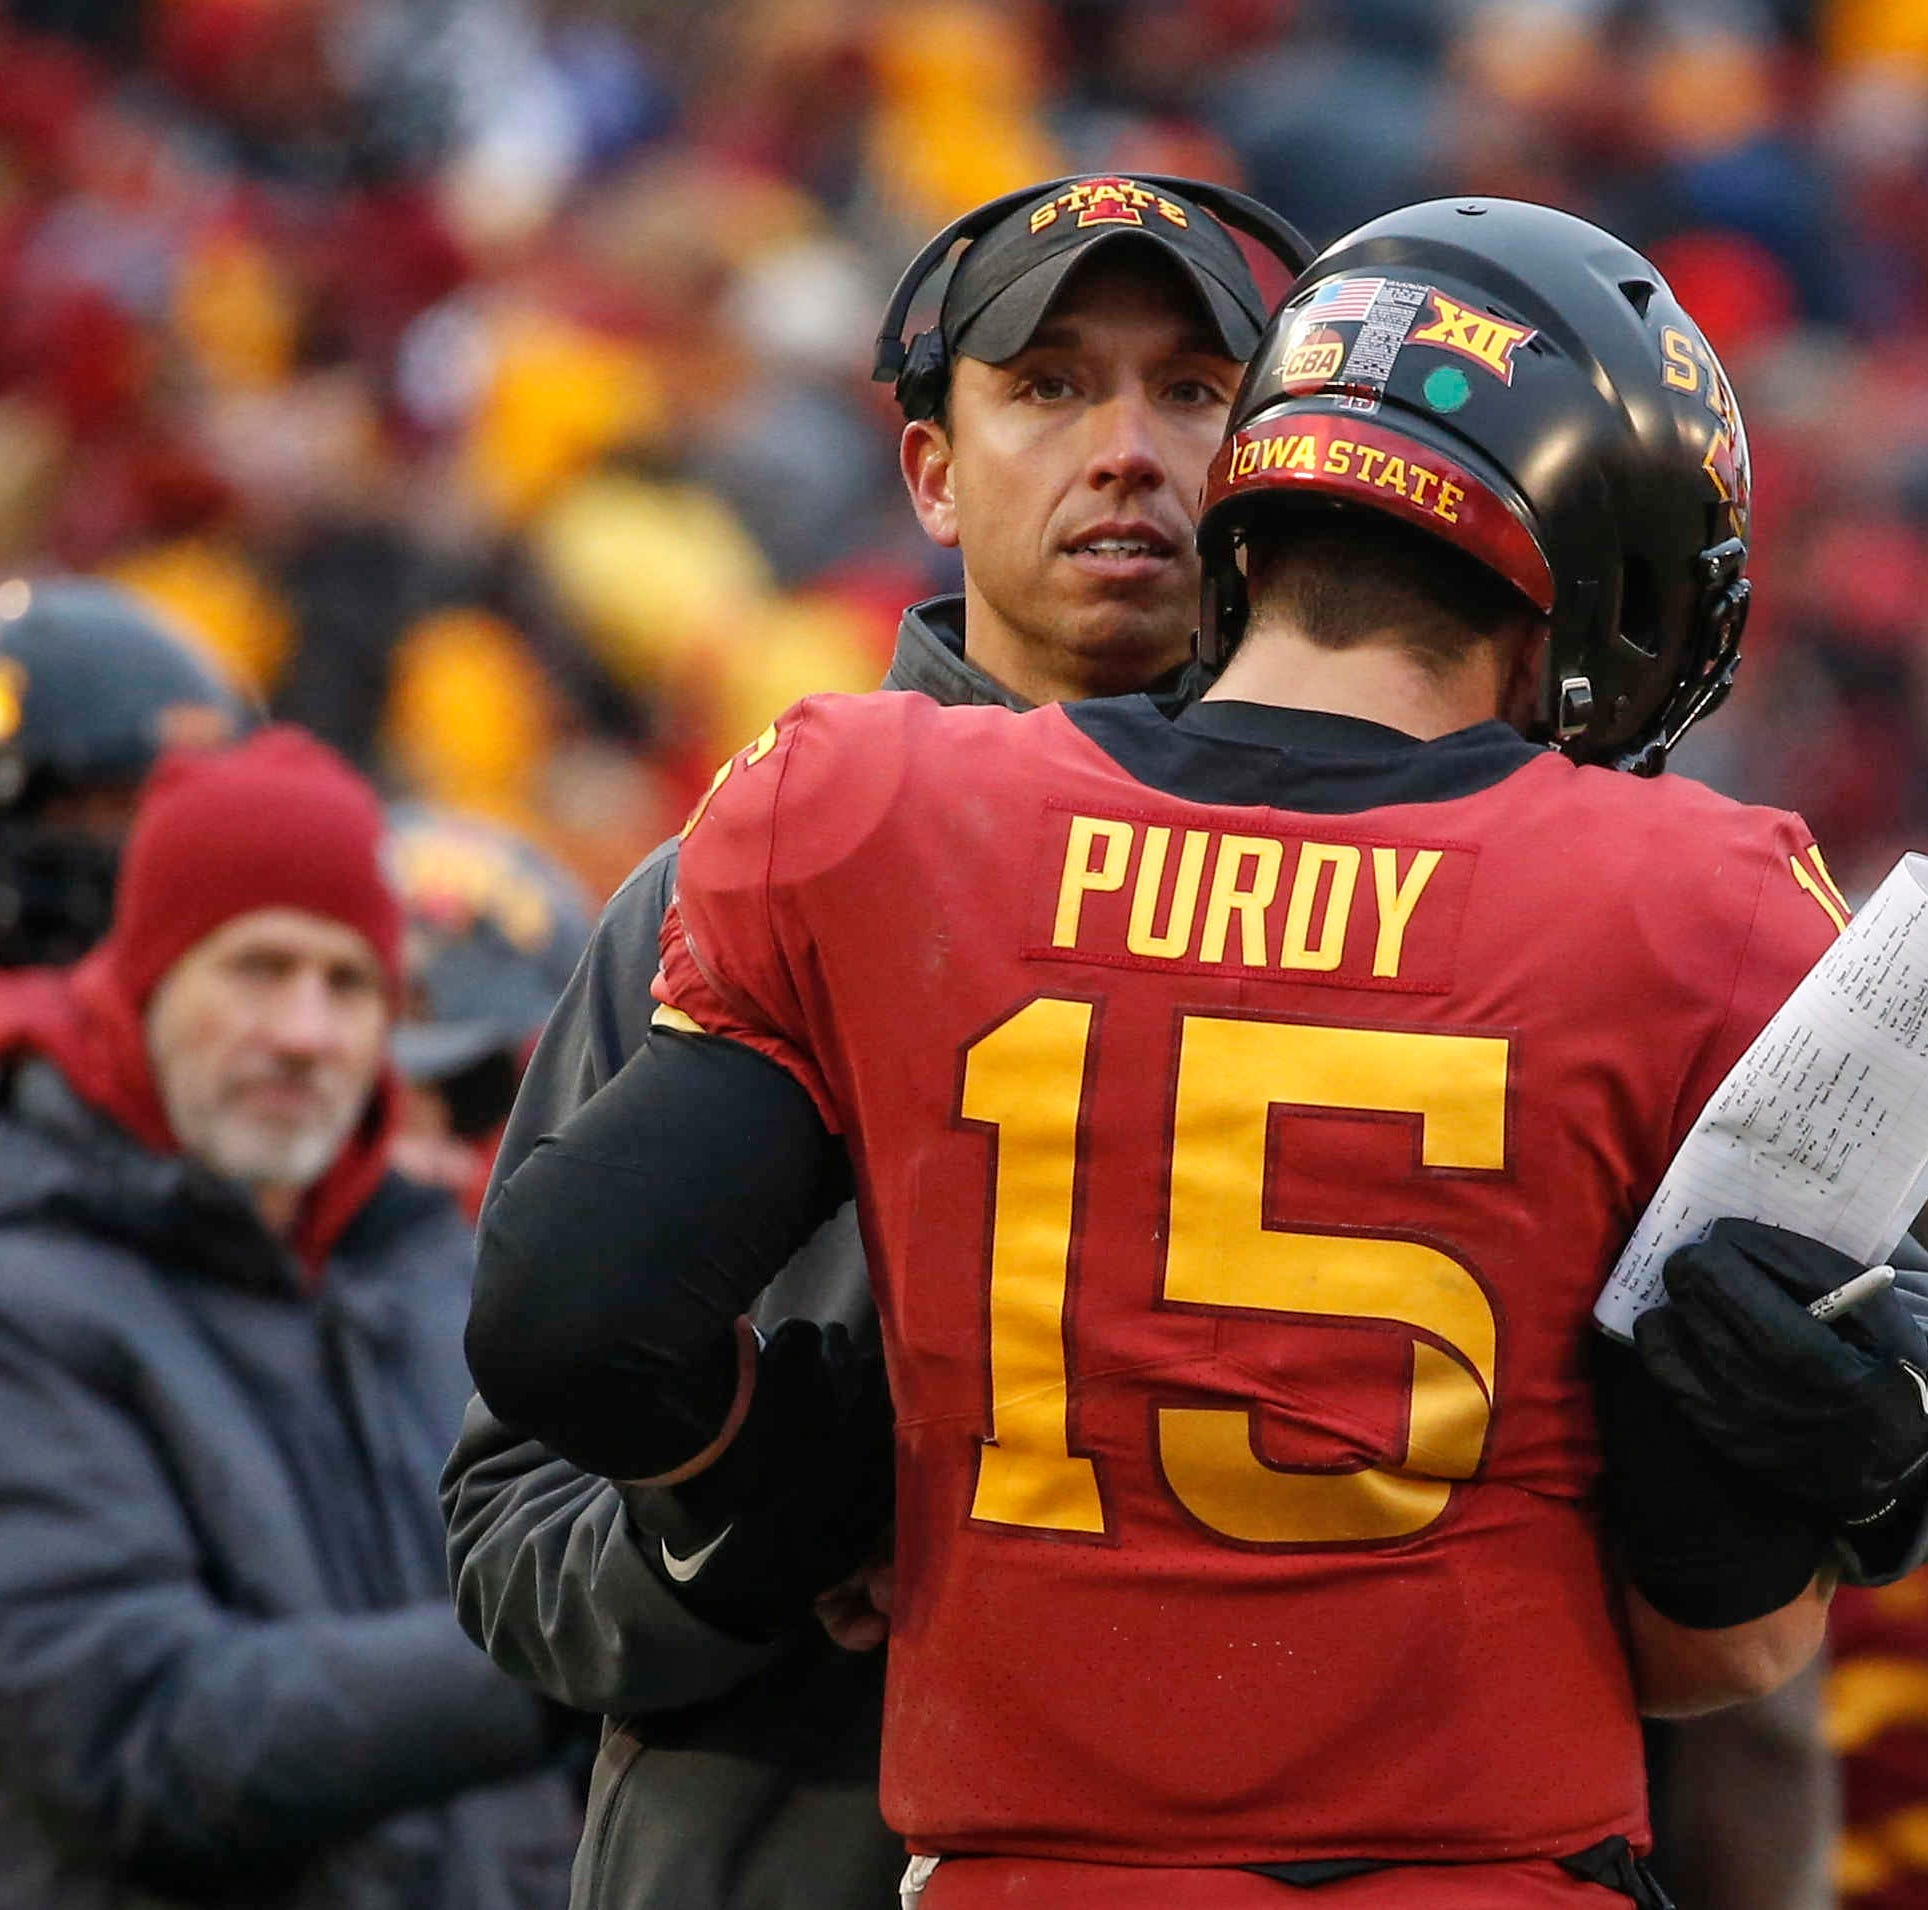 Peterson: Iowa State's four-year journey from Big 12 goose egg to 'best bowl ever' is staggering